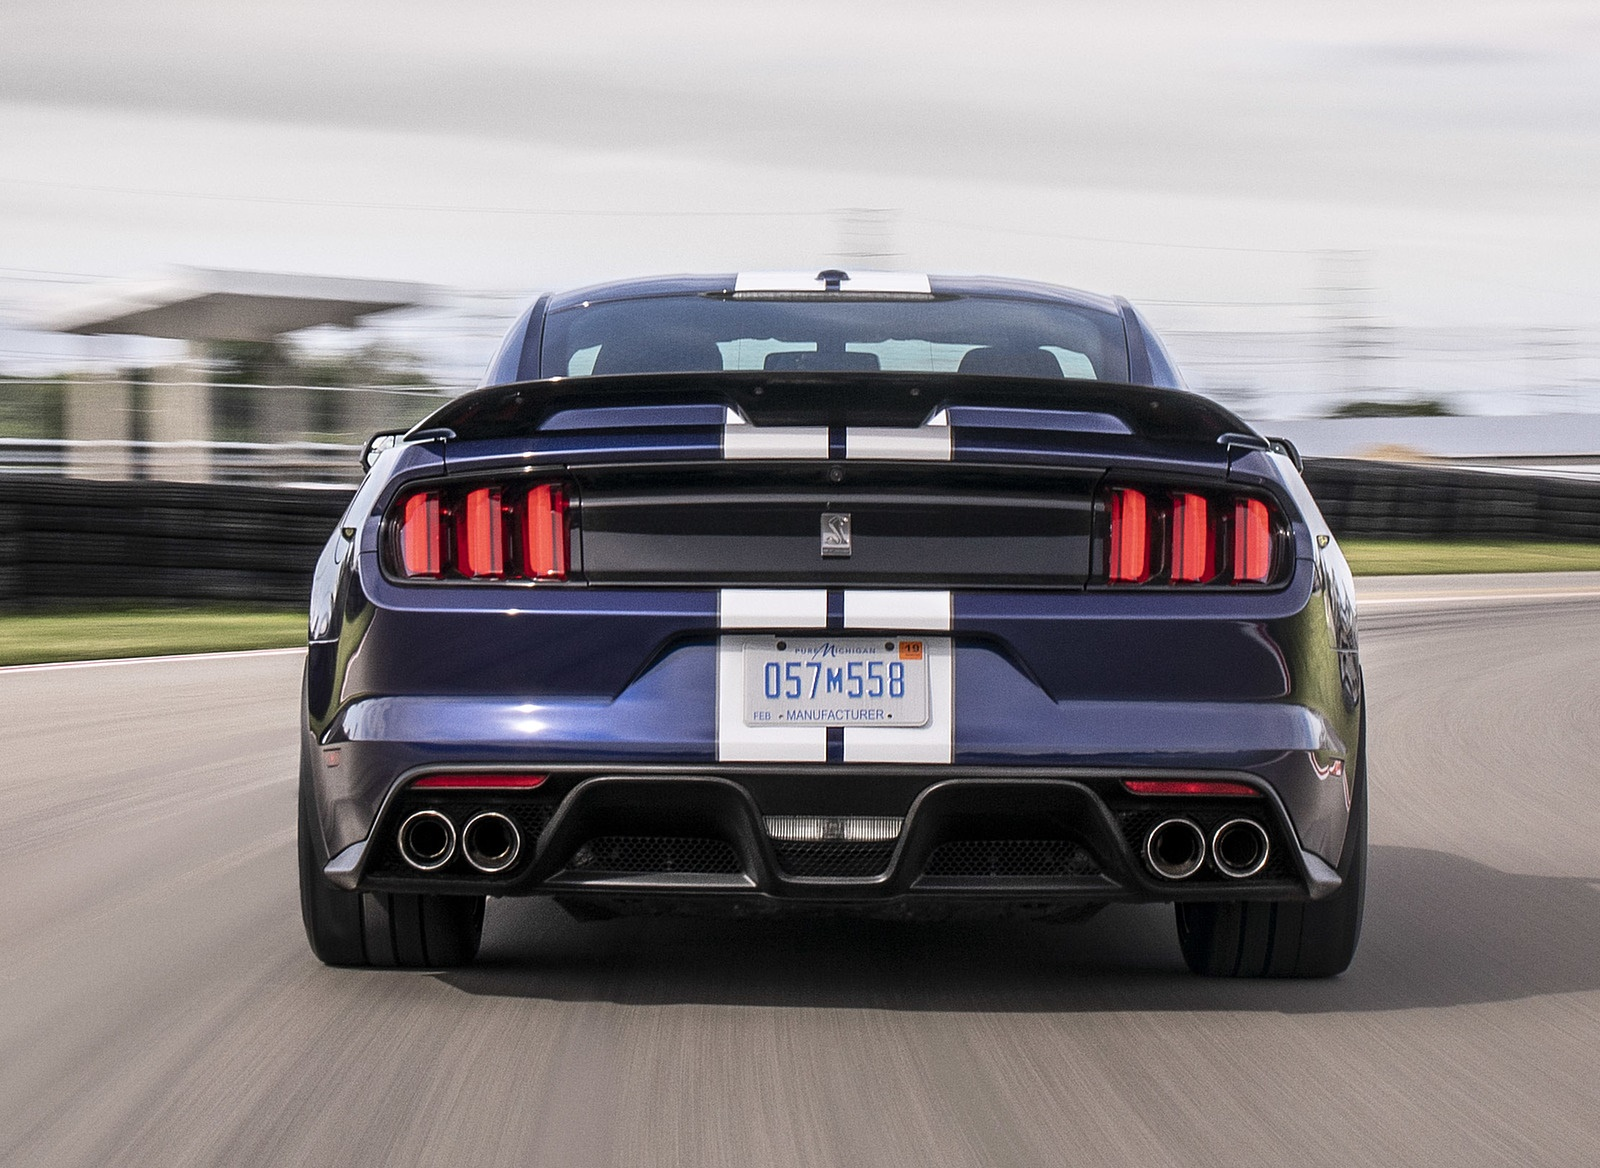 2019 Ford Mustang Shelby GT350 Rear Wallpapers (6)